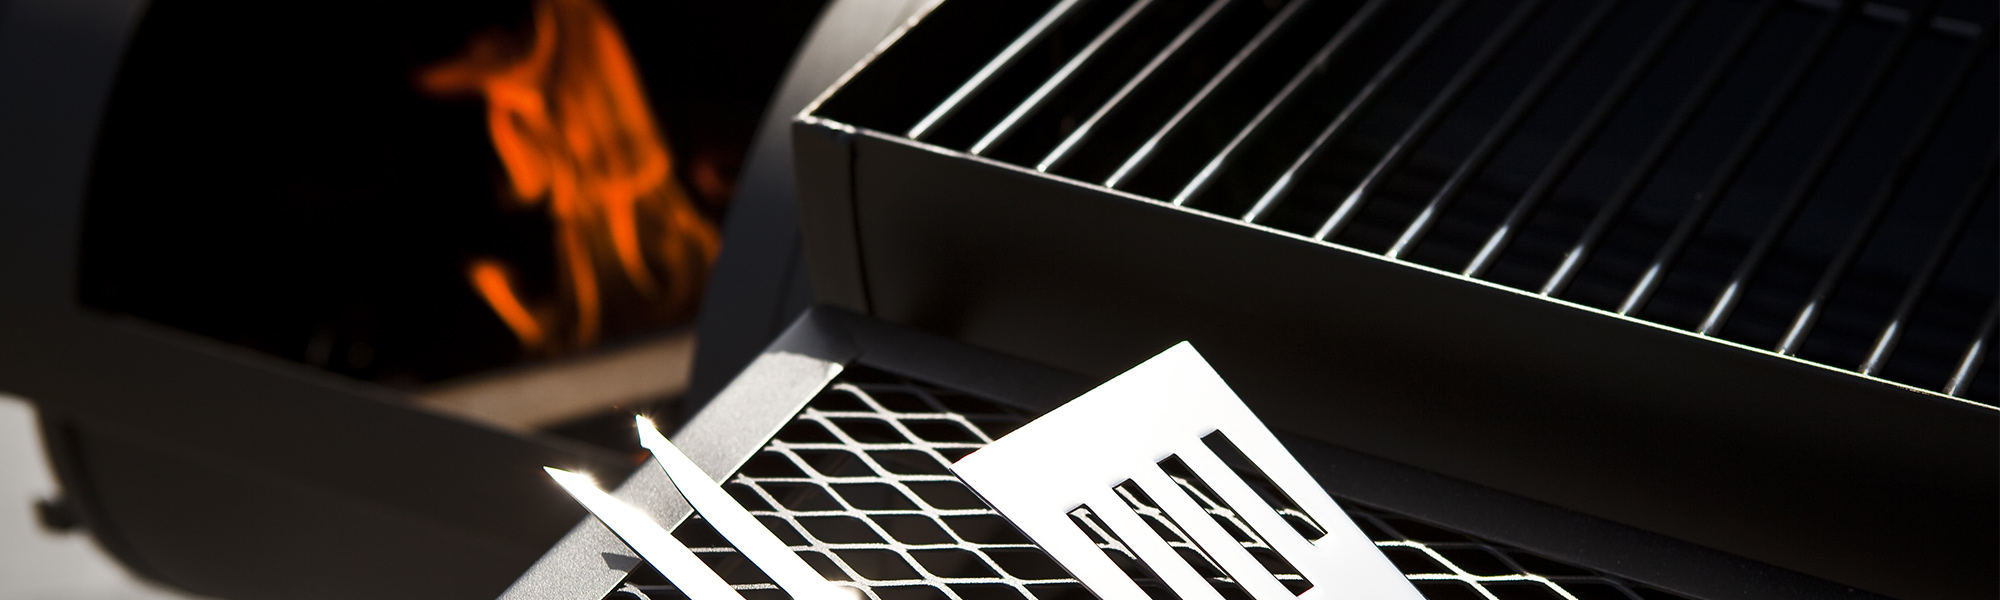 Close-Up of a Grill